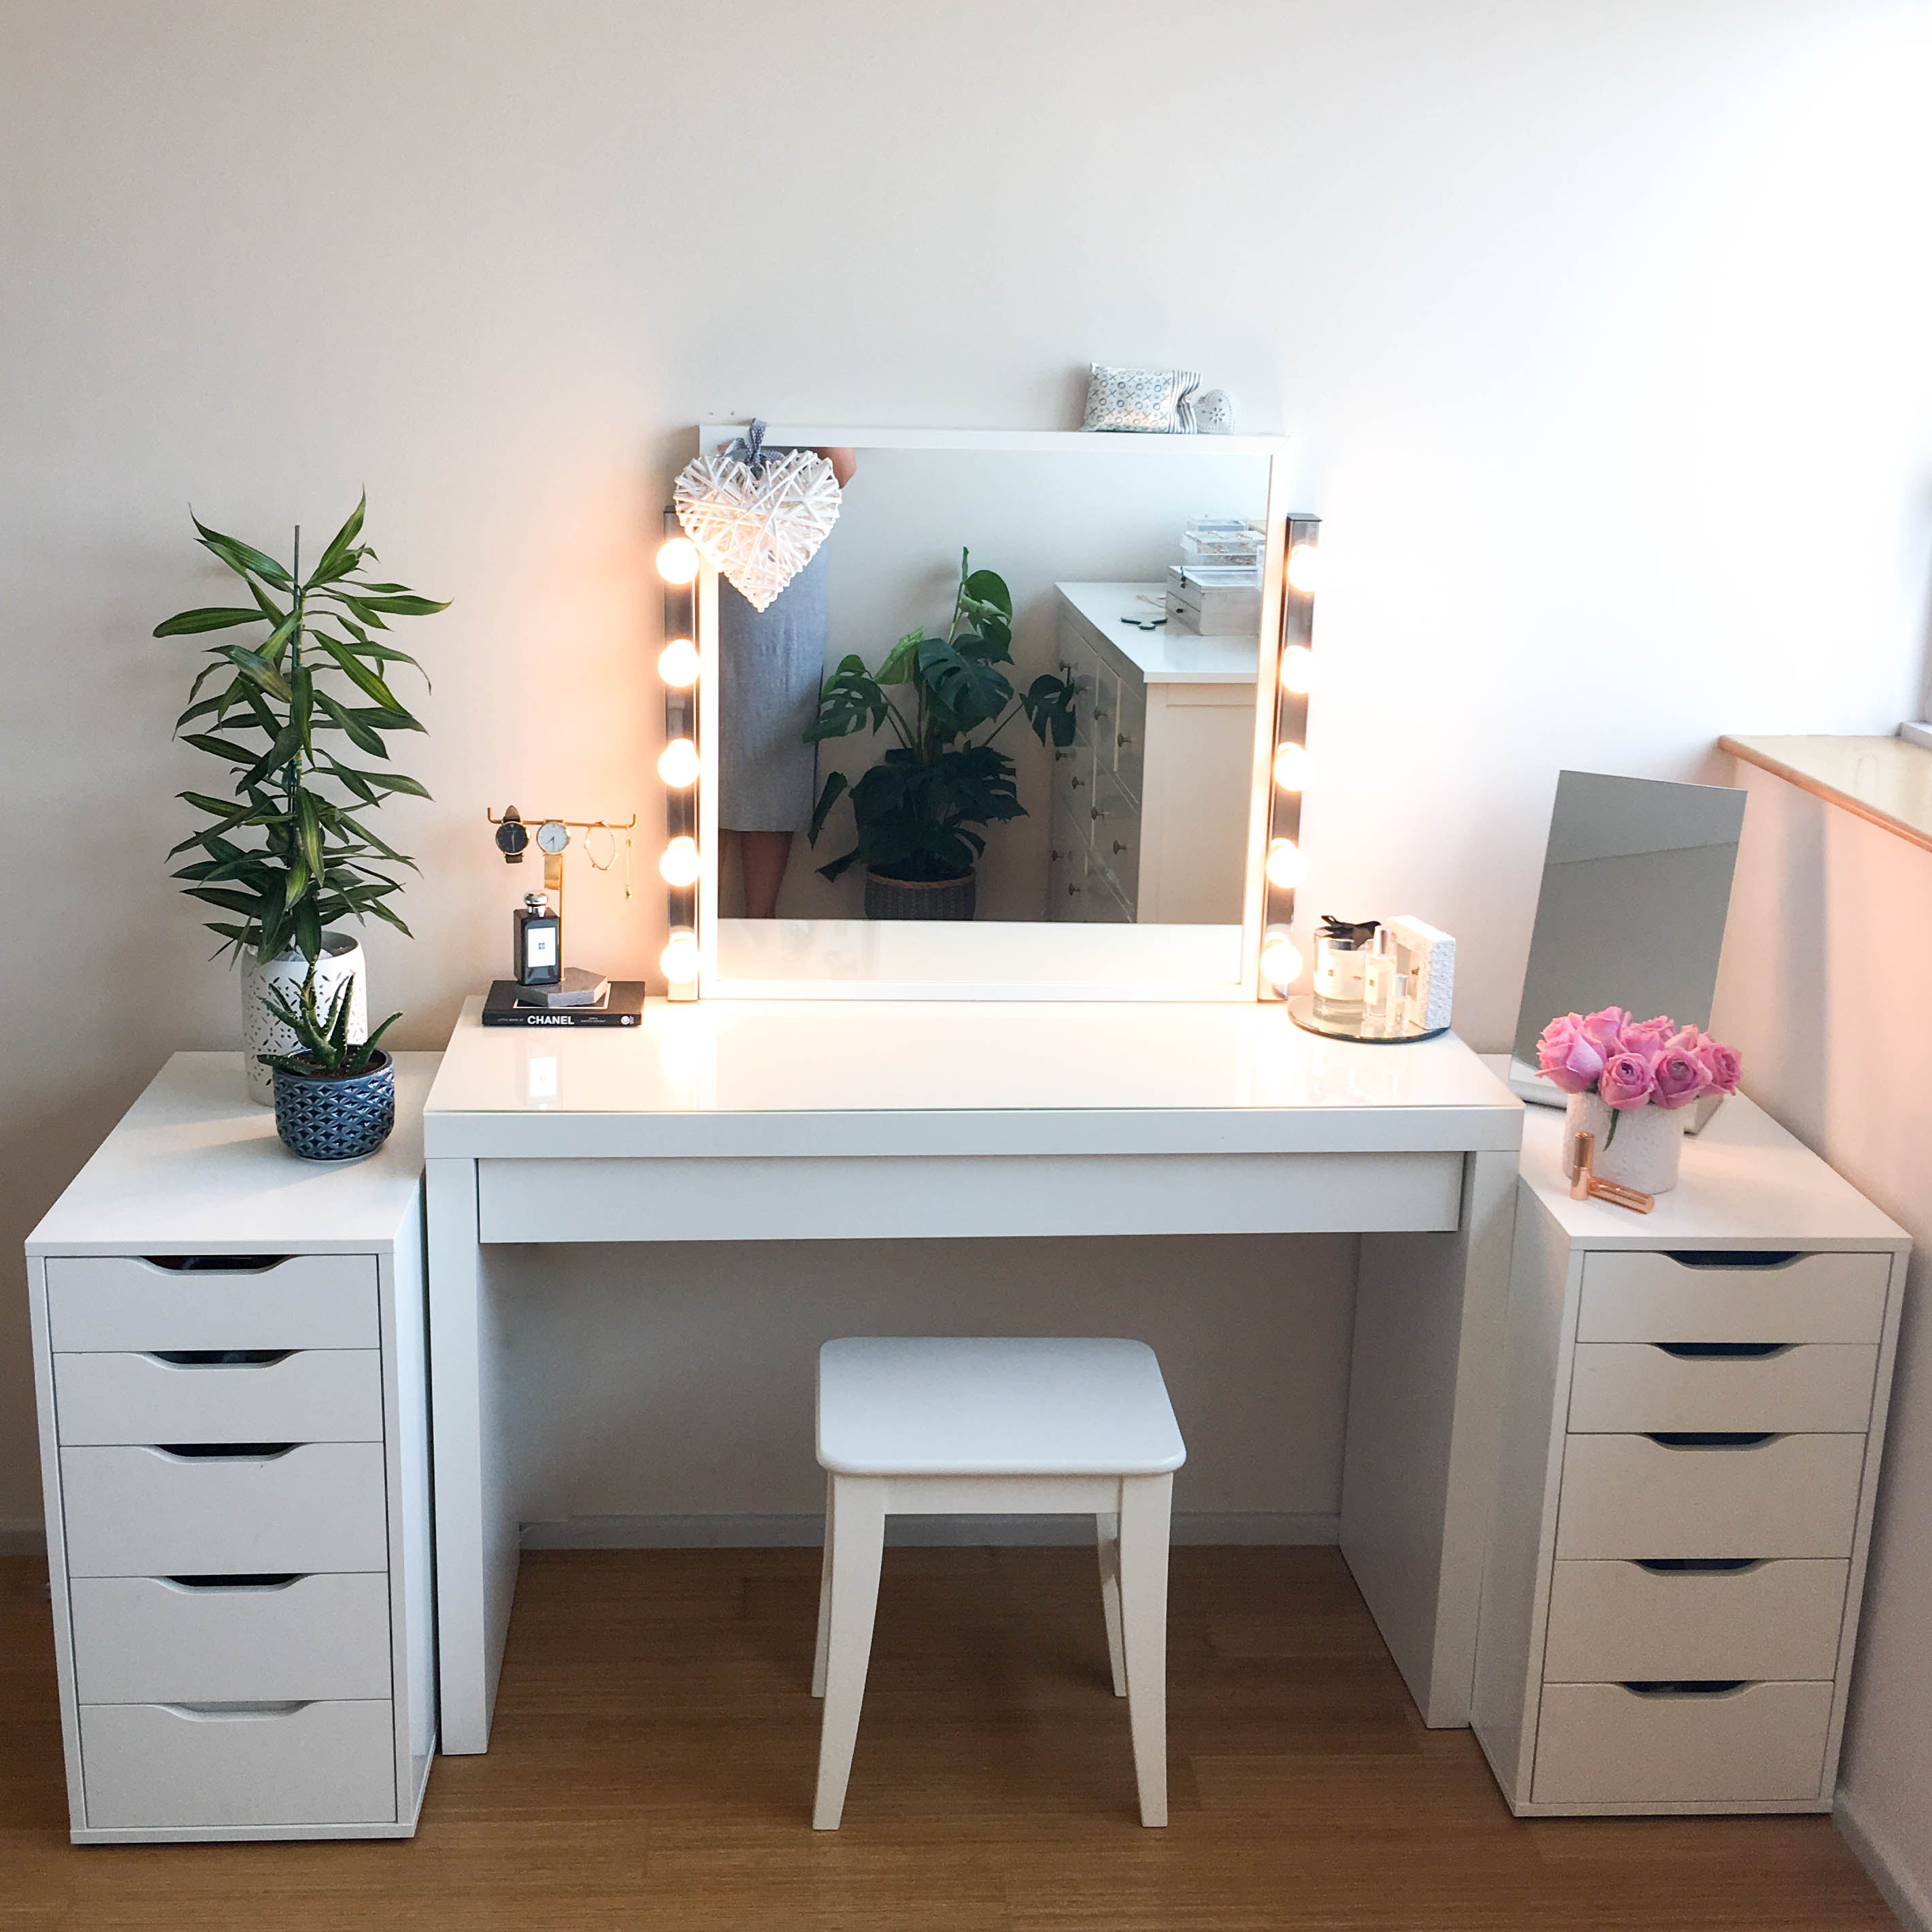 table tables one vs small which is better dressing vanity makeup blog large